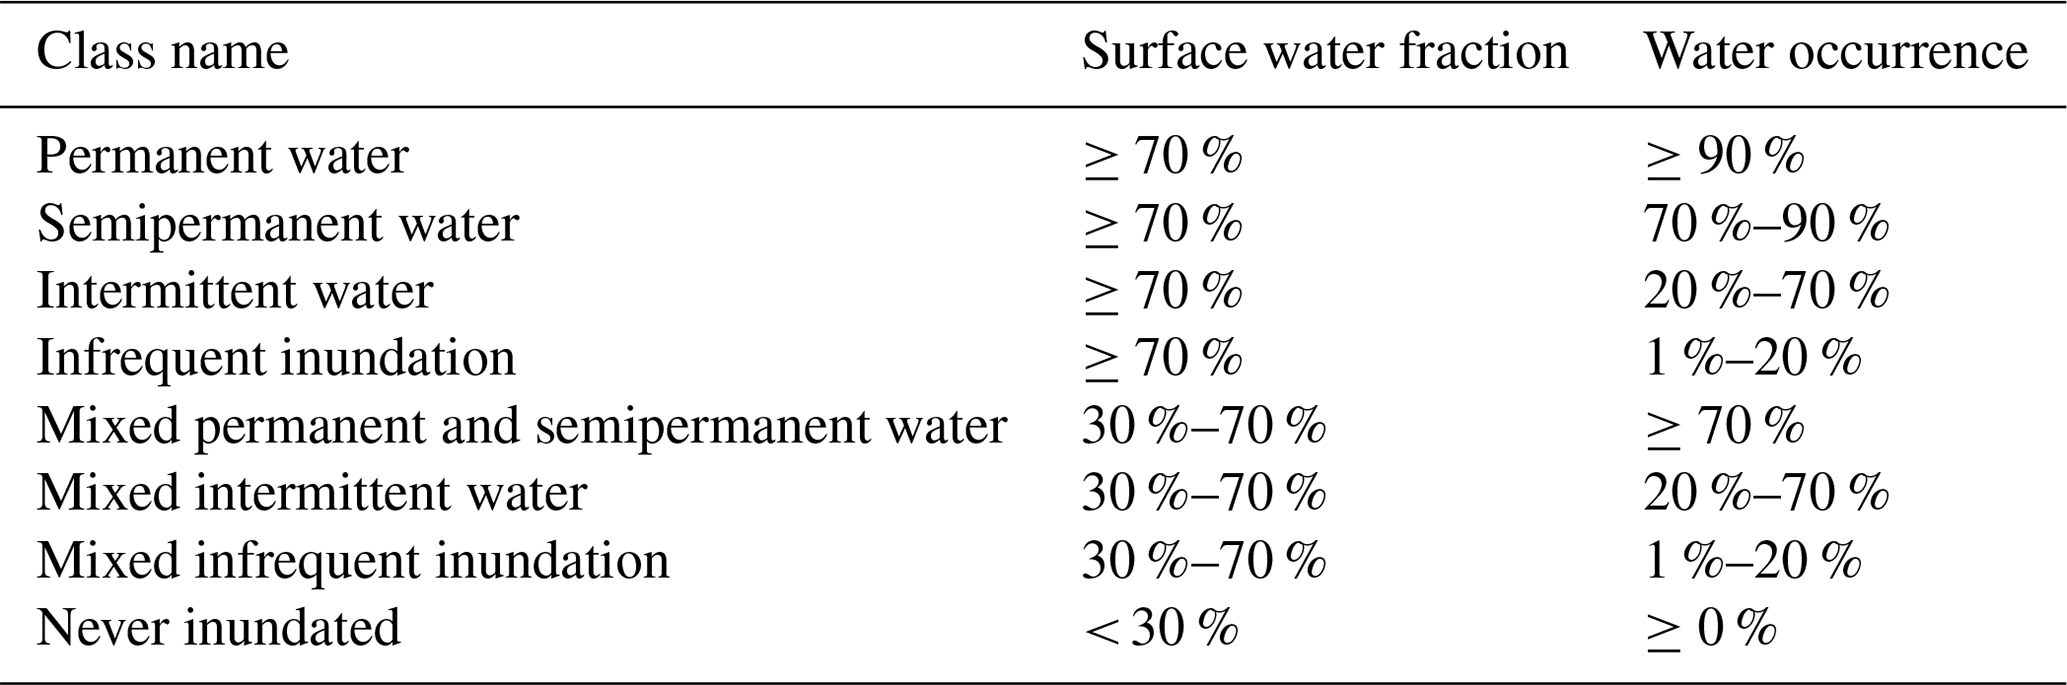 HESS - A new dense 18-year time series of surface water